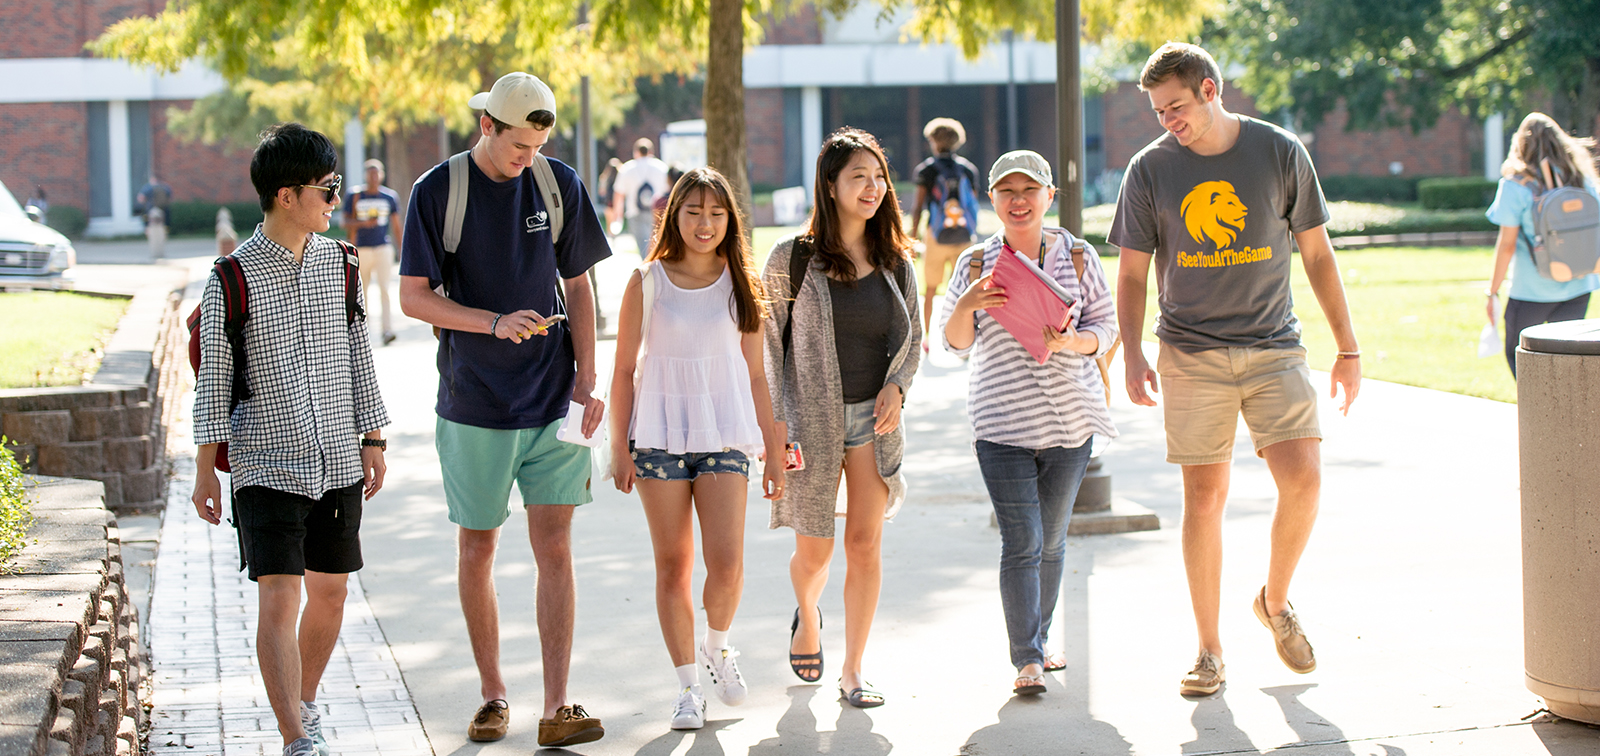 A group of diverse students walking on campus.